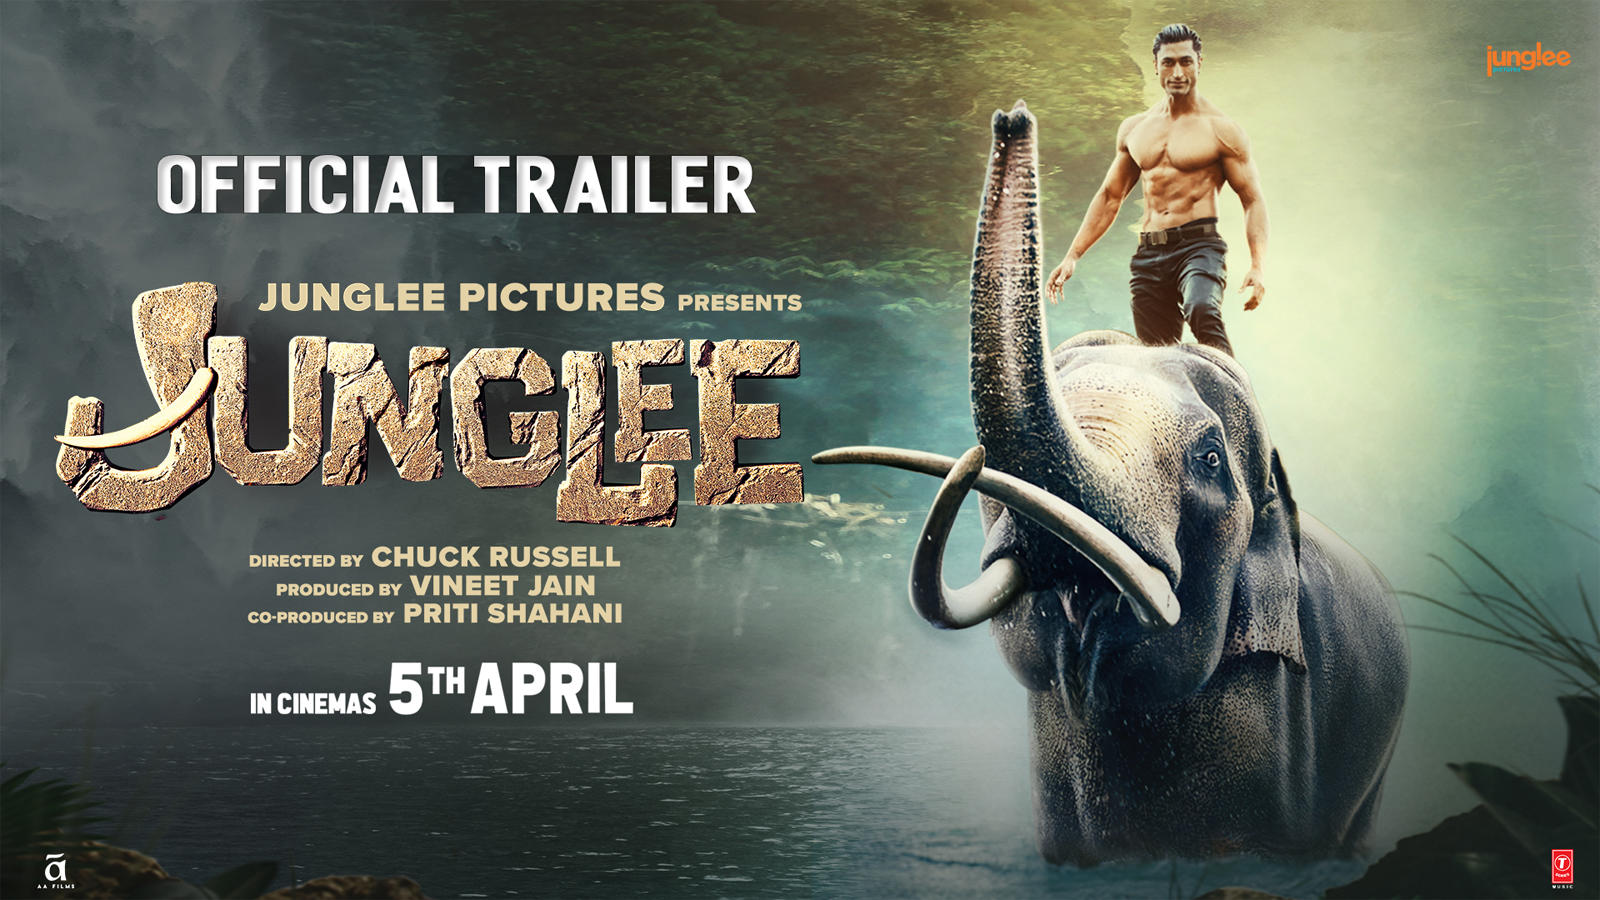 'Junglee' Official Trailer | Vidyut Jammwal, Pooja Sawant, Asha Bhat | Directed by Chuck Russell | 5th April 19